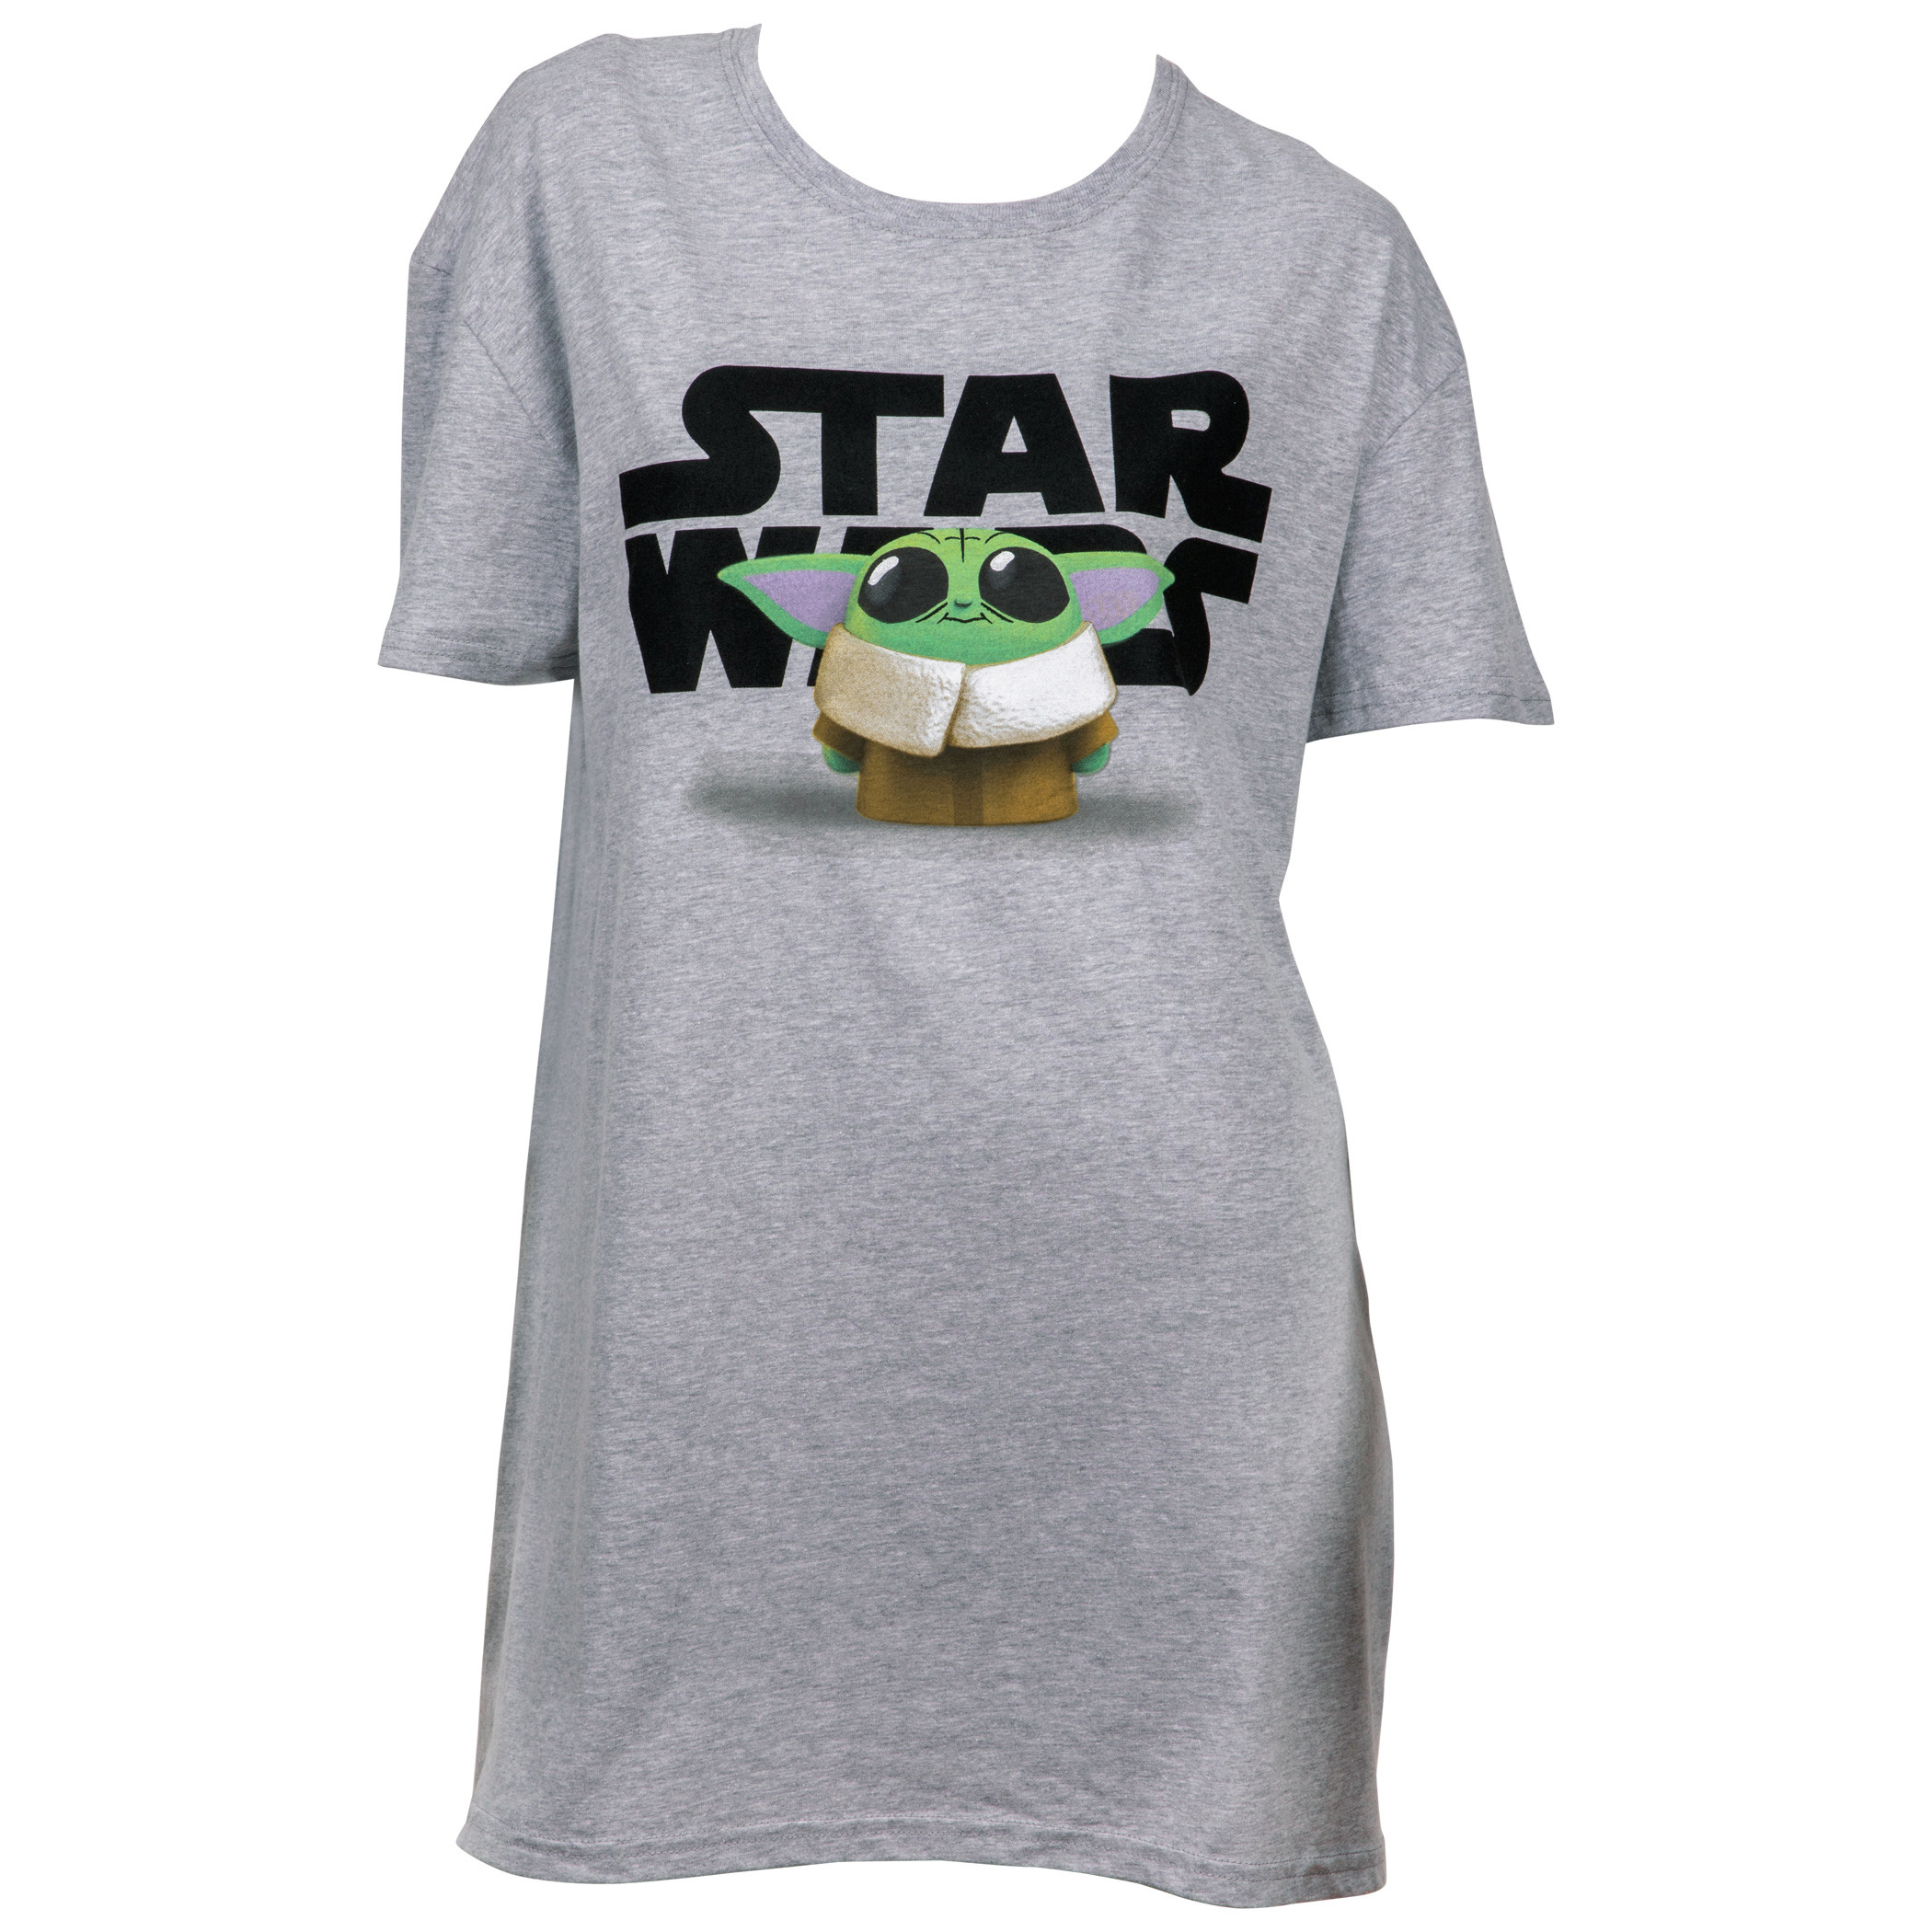 Star Wars The Mandalorian The Child Chibi Sleep Shirt